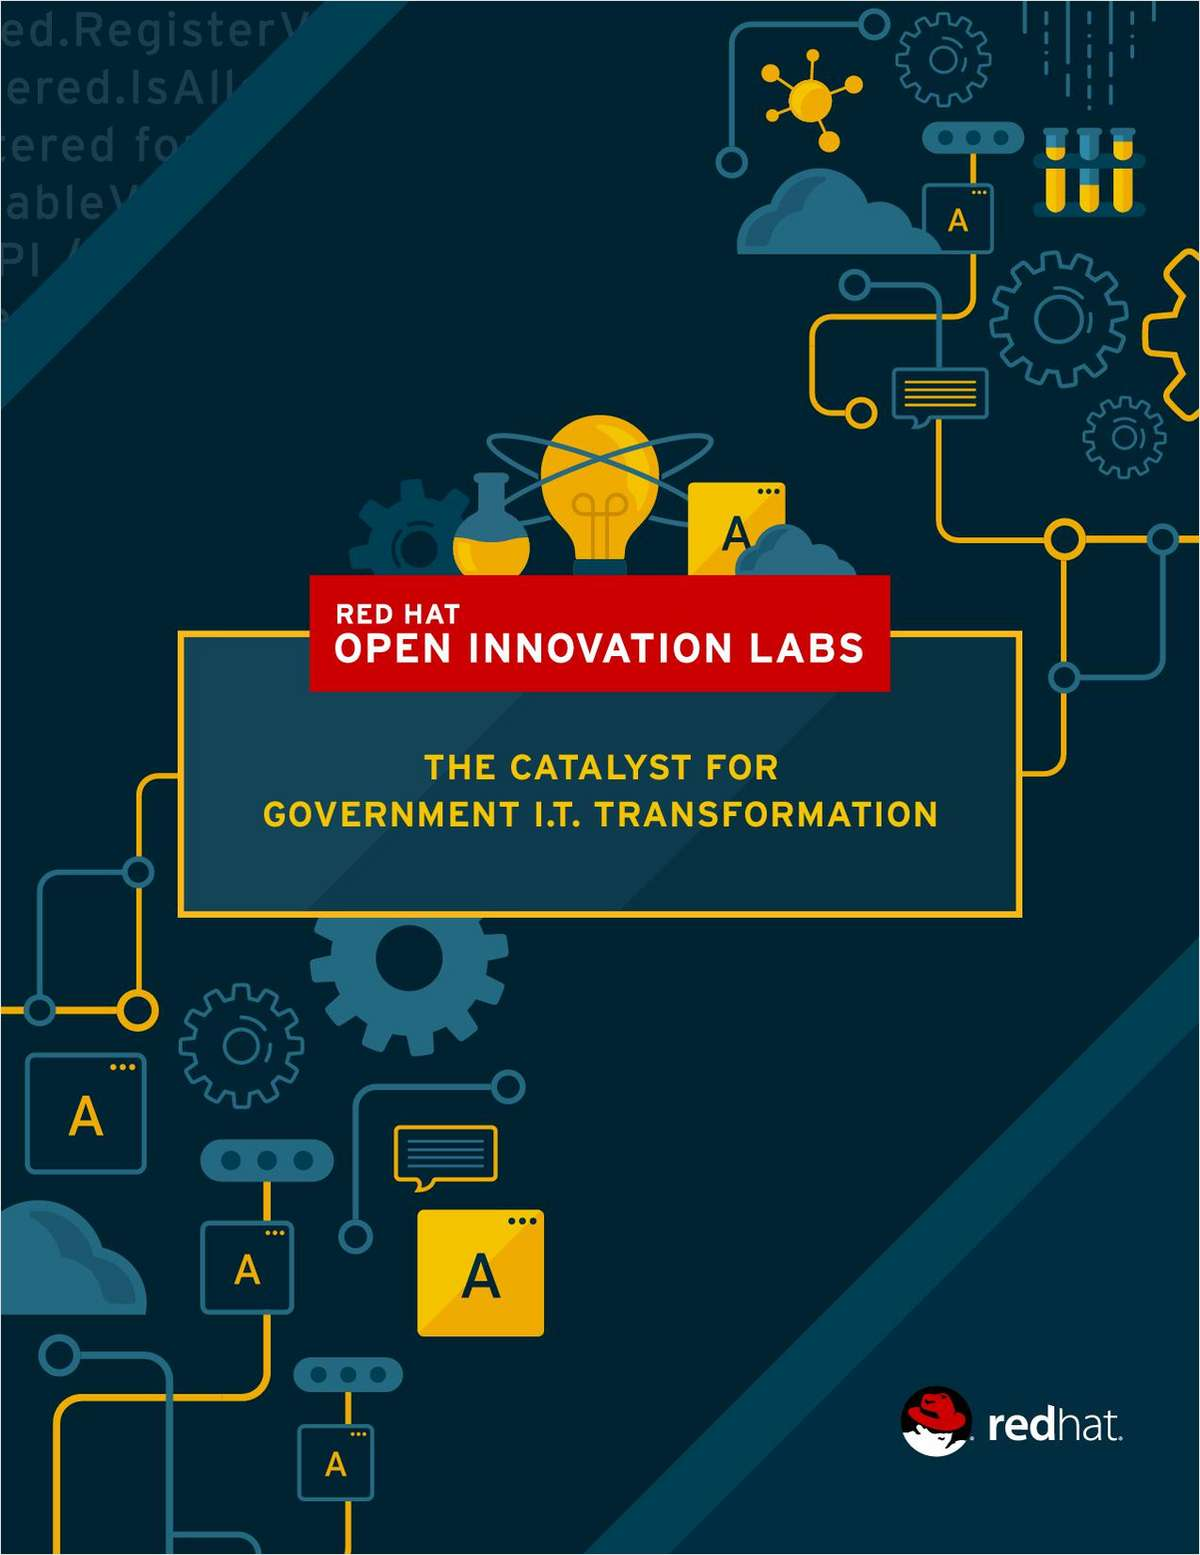 Open Innovation Labs: The Catalyst for Government I.T. Transformation